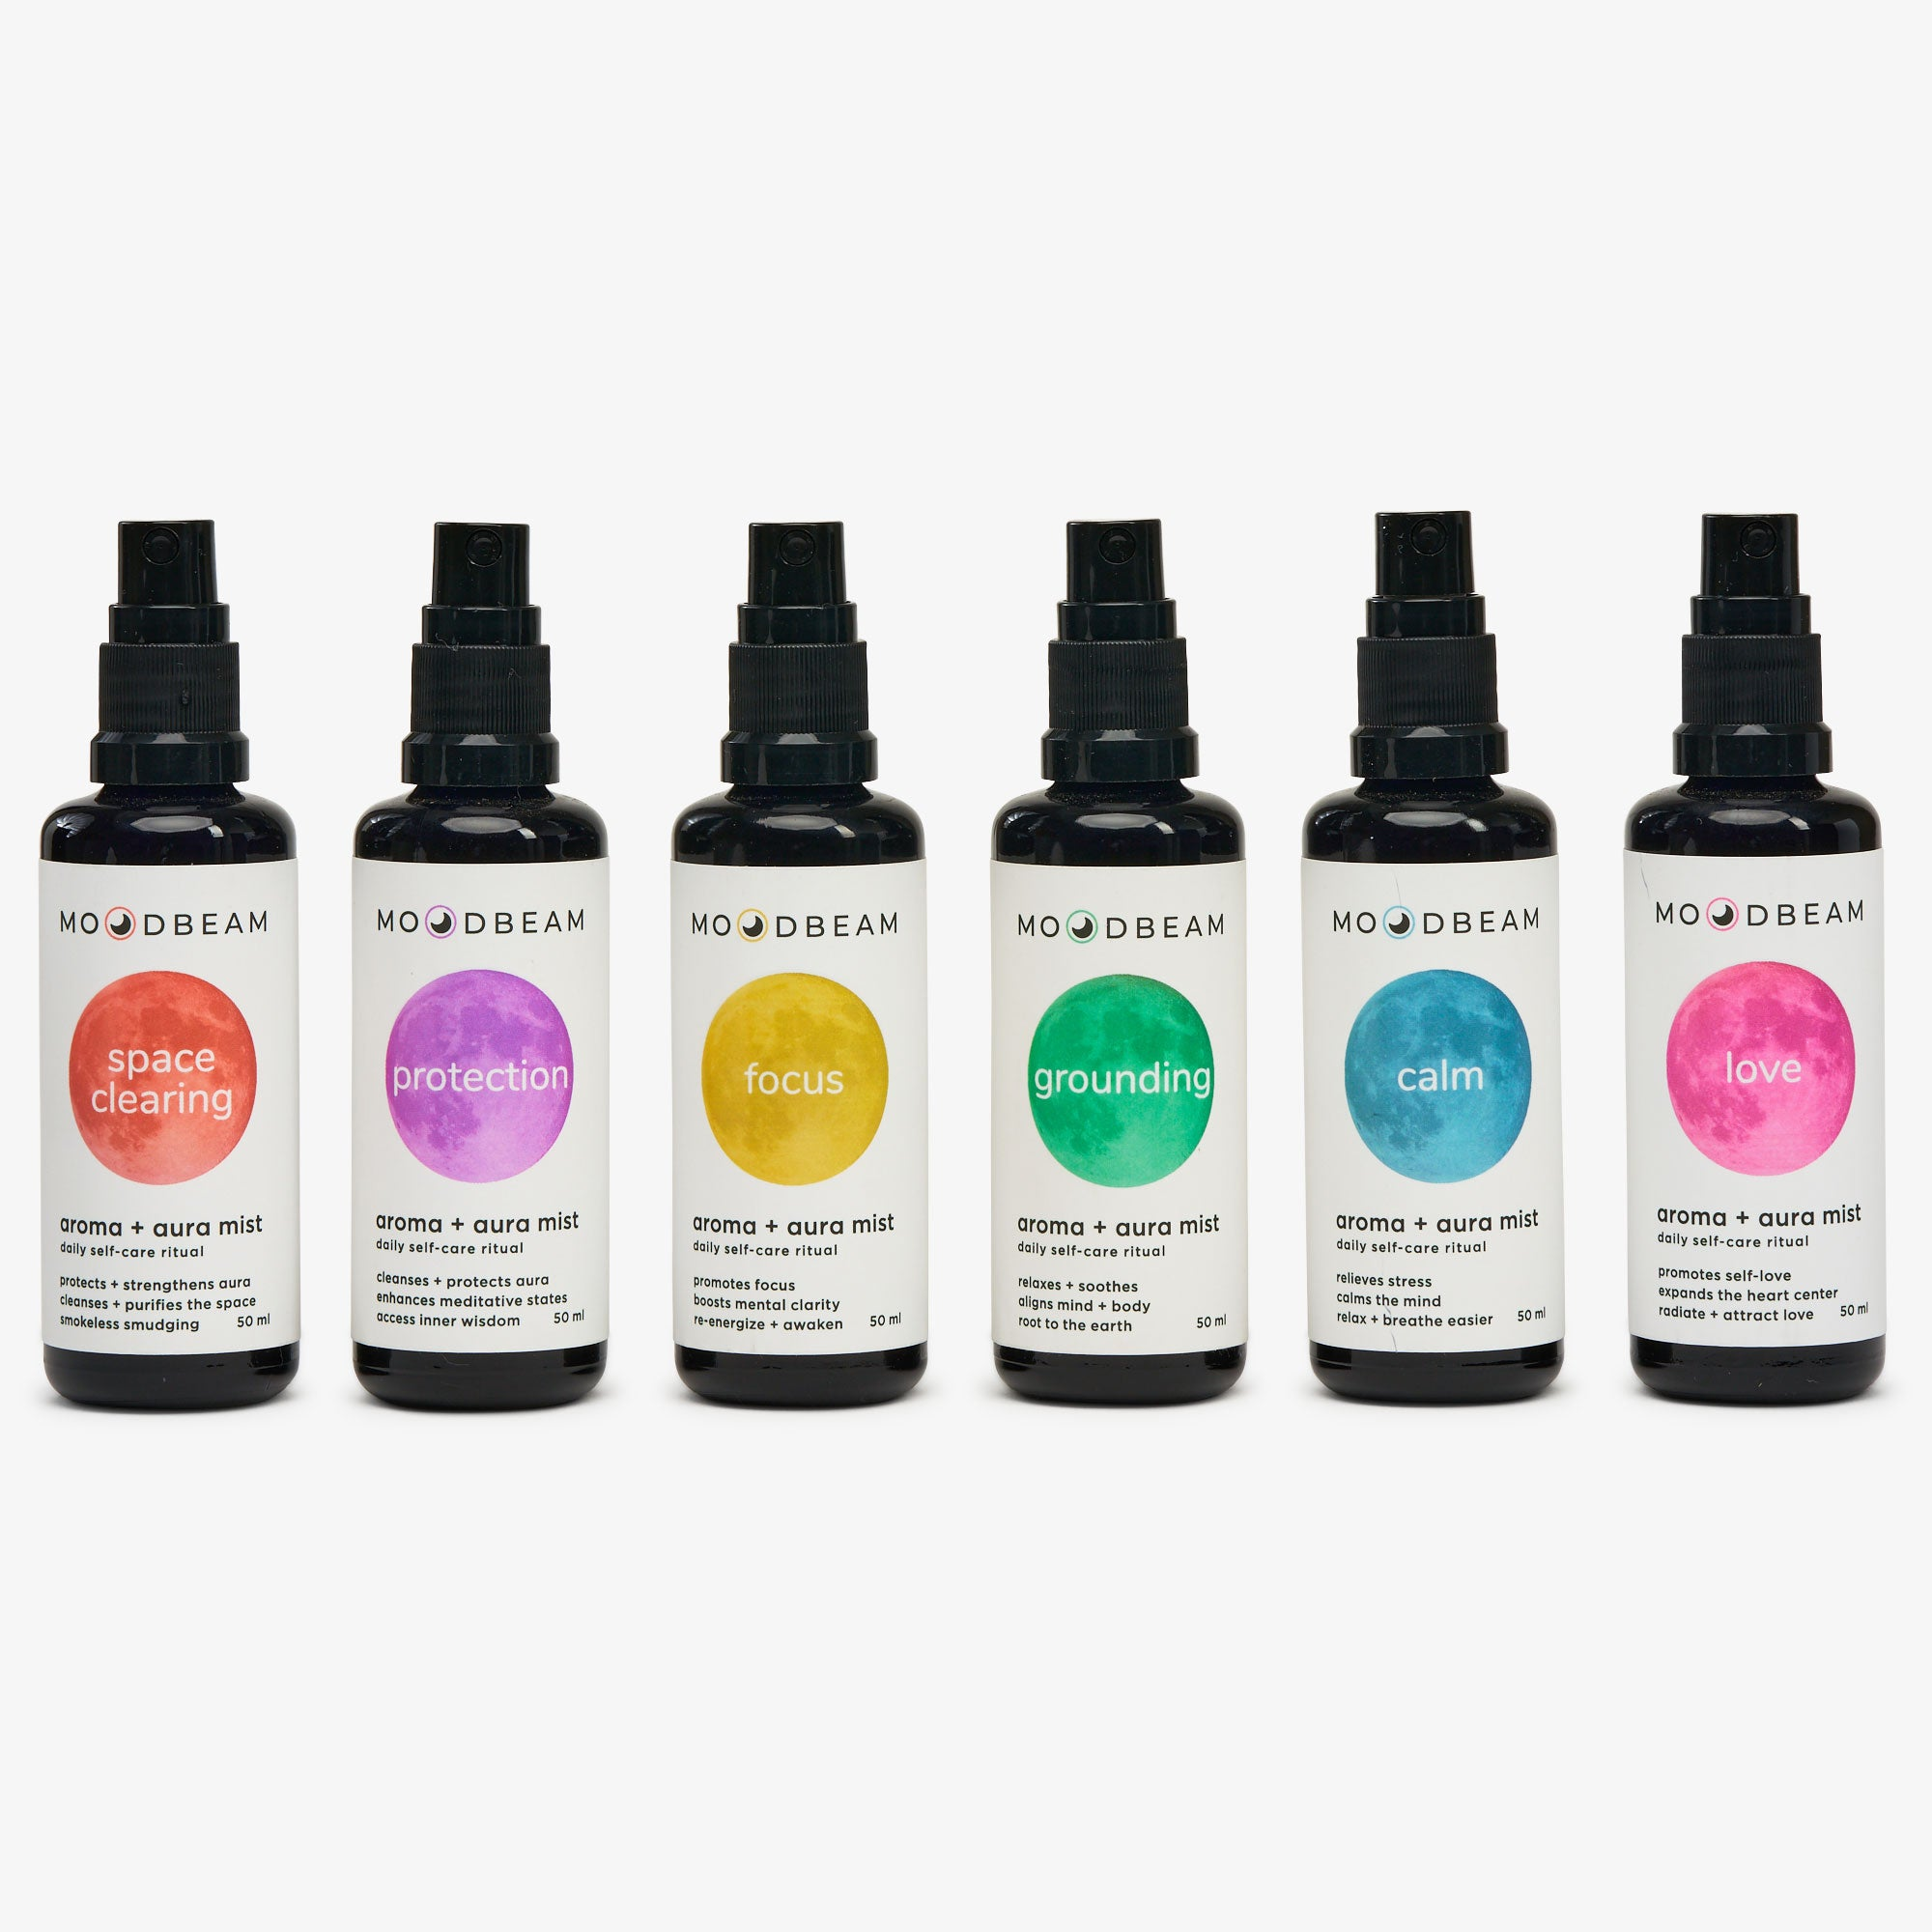 The Moodbeam Aura Mist Collection Bundle